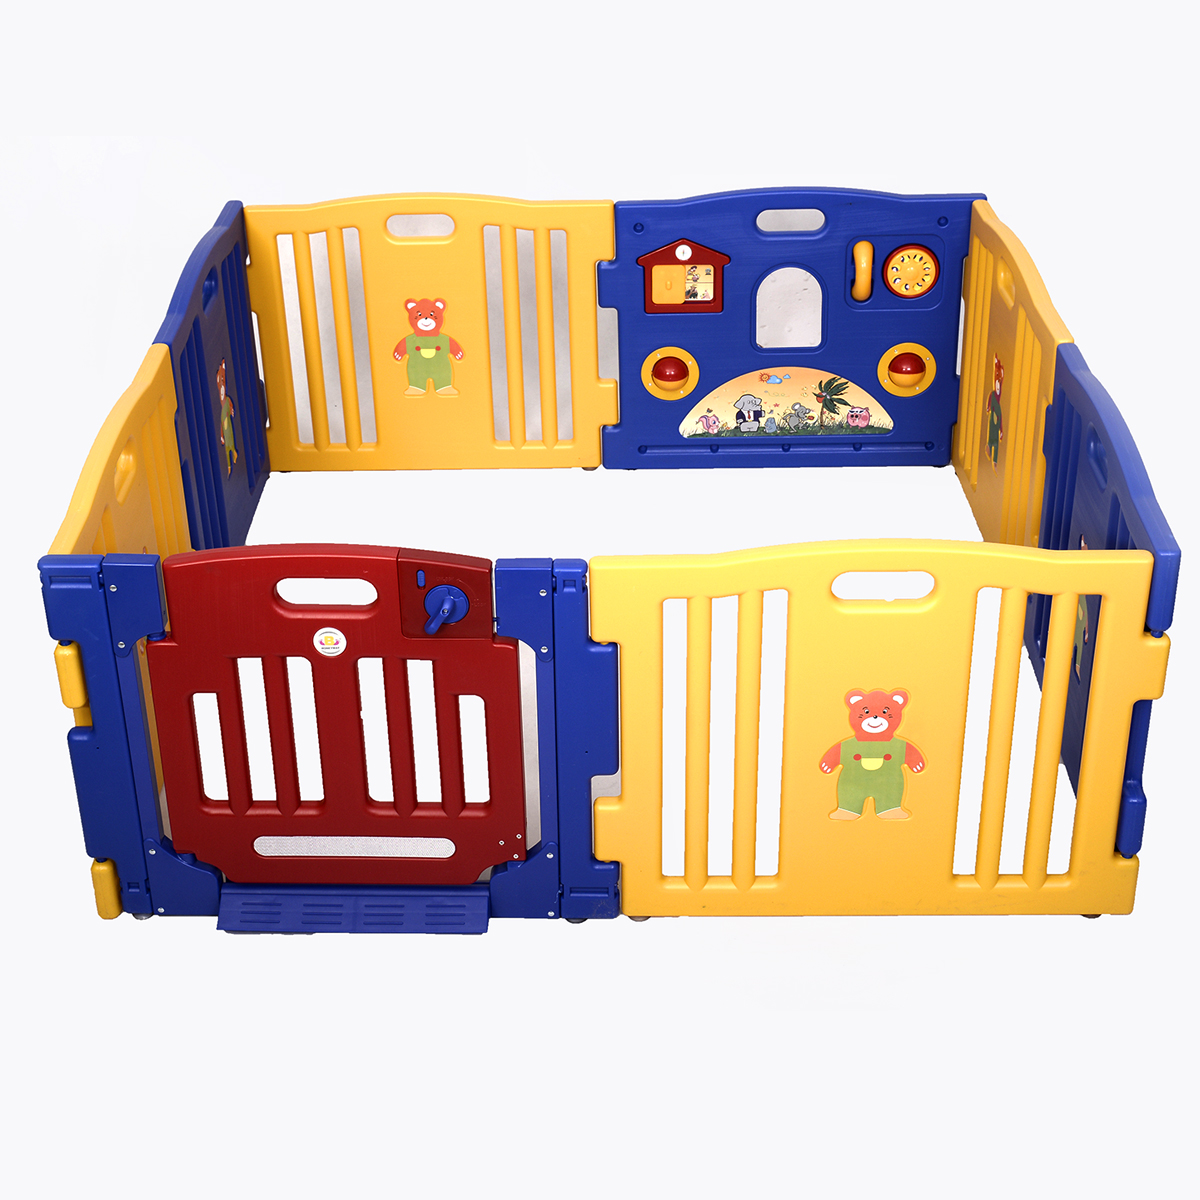 Costway Baby Playpen Kids 8 Panel Safety Play Center Yard Home